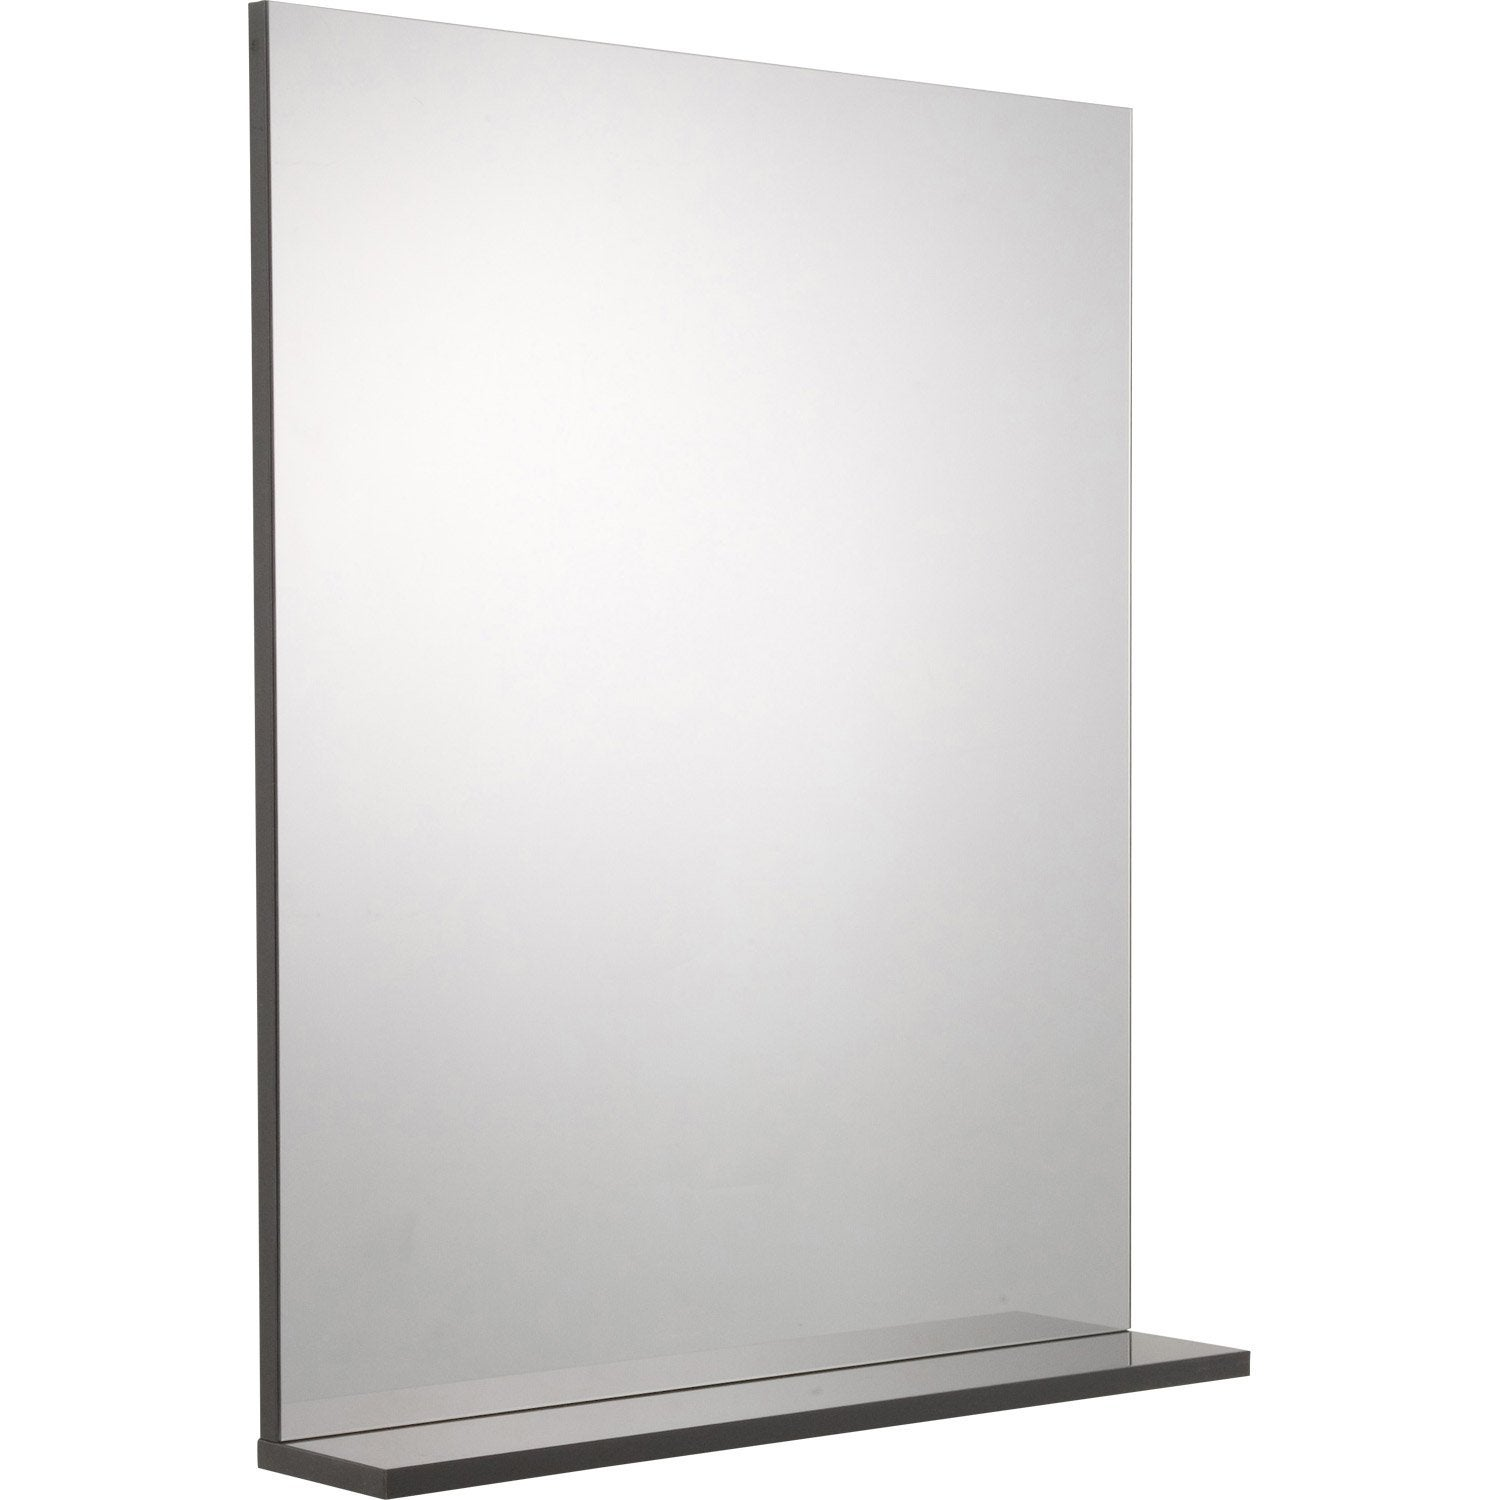 Mirroir leroy merlin dcoration miroir blanc laque toulon for Miroir sur mesure leroy merlin